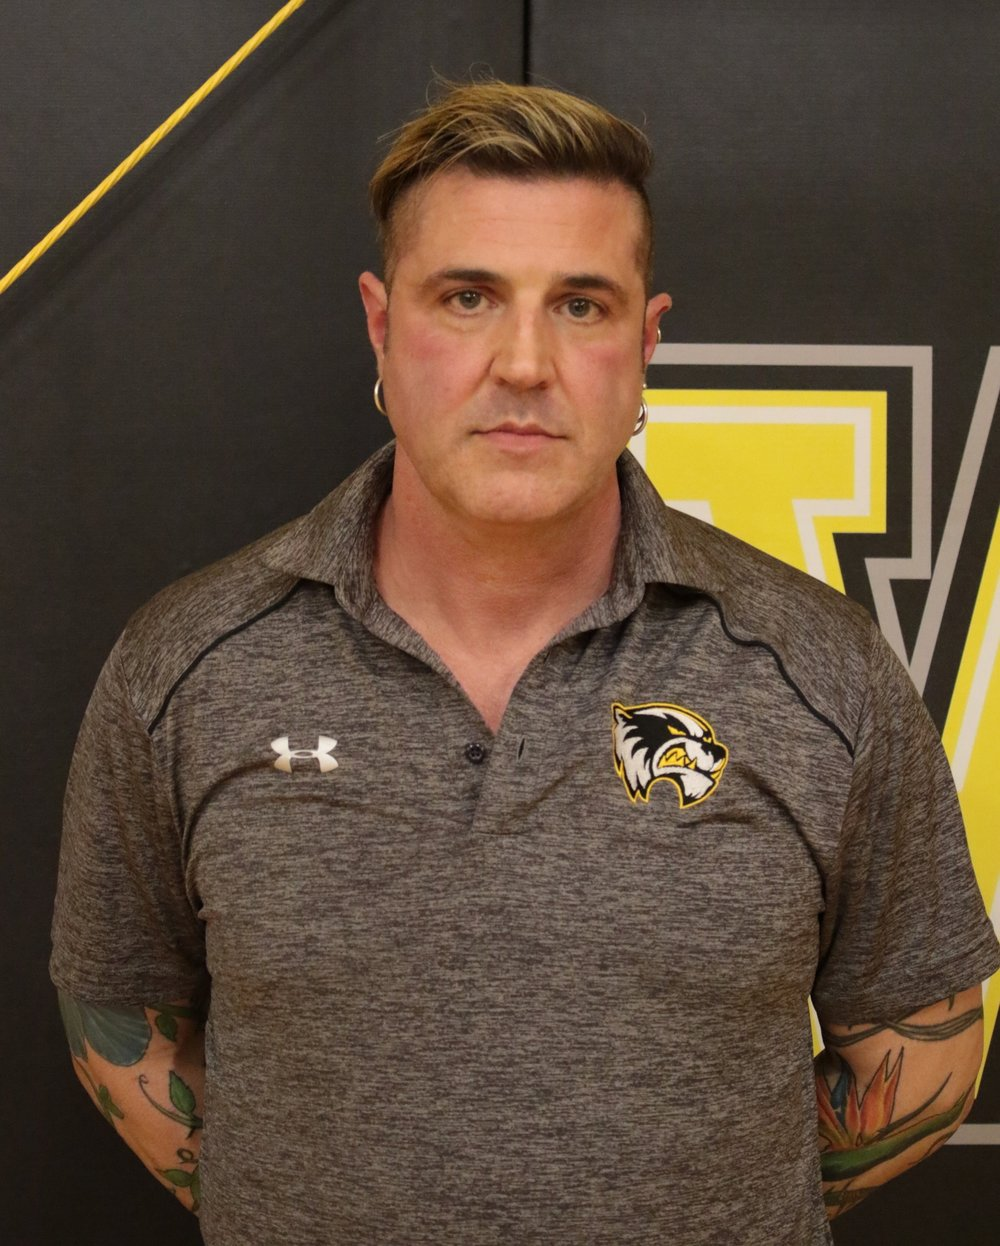 KEVIN MANNING   VARSITY HEAD COACH   kevinmanning@walden-school.org